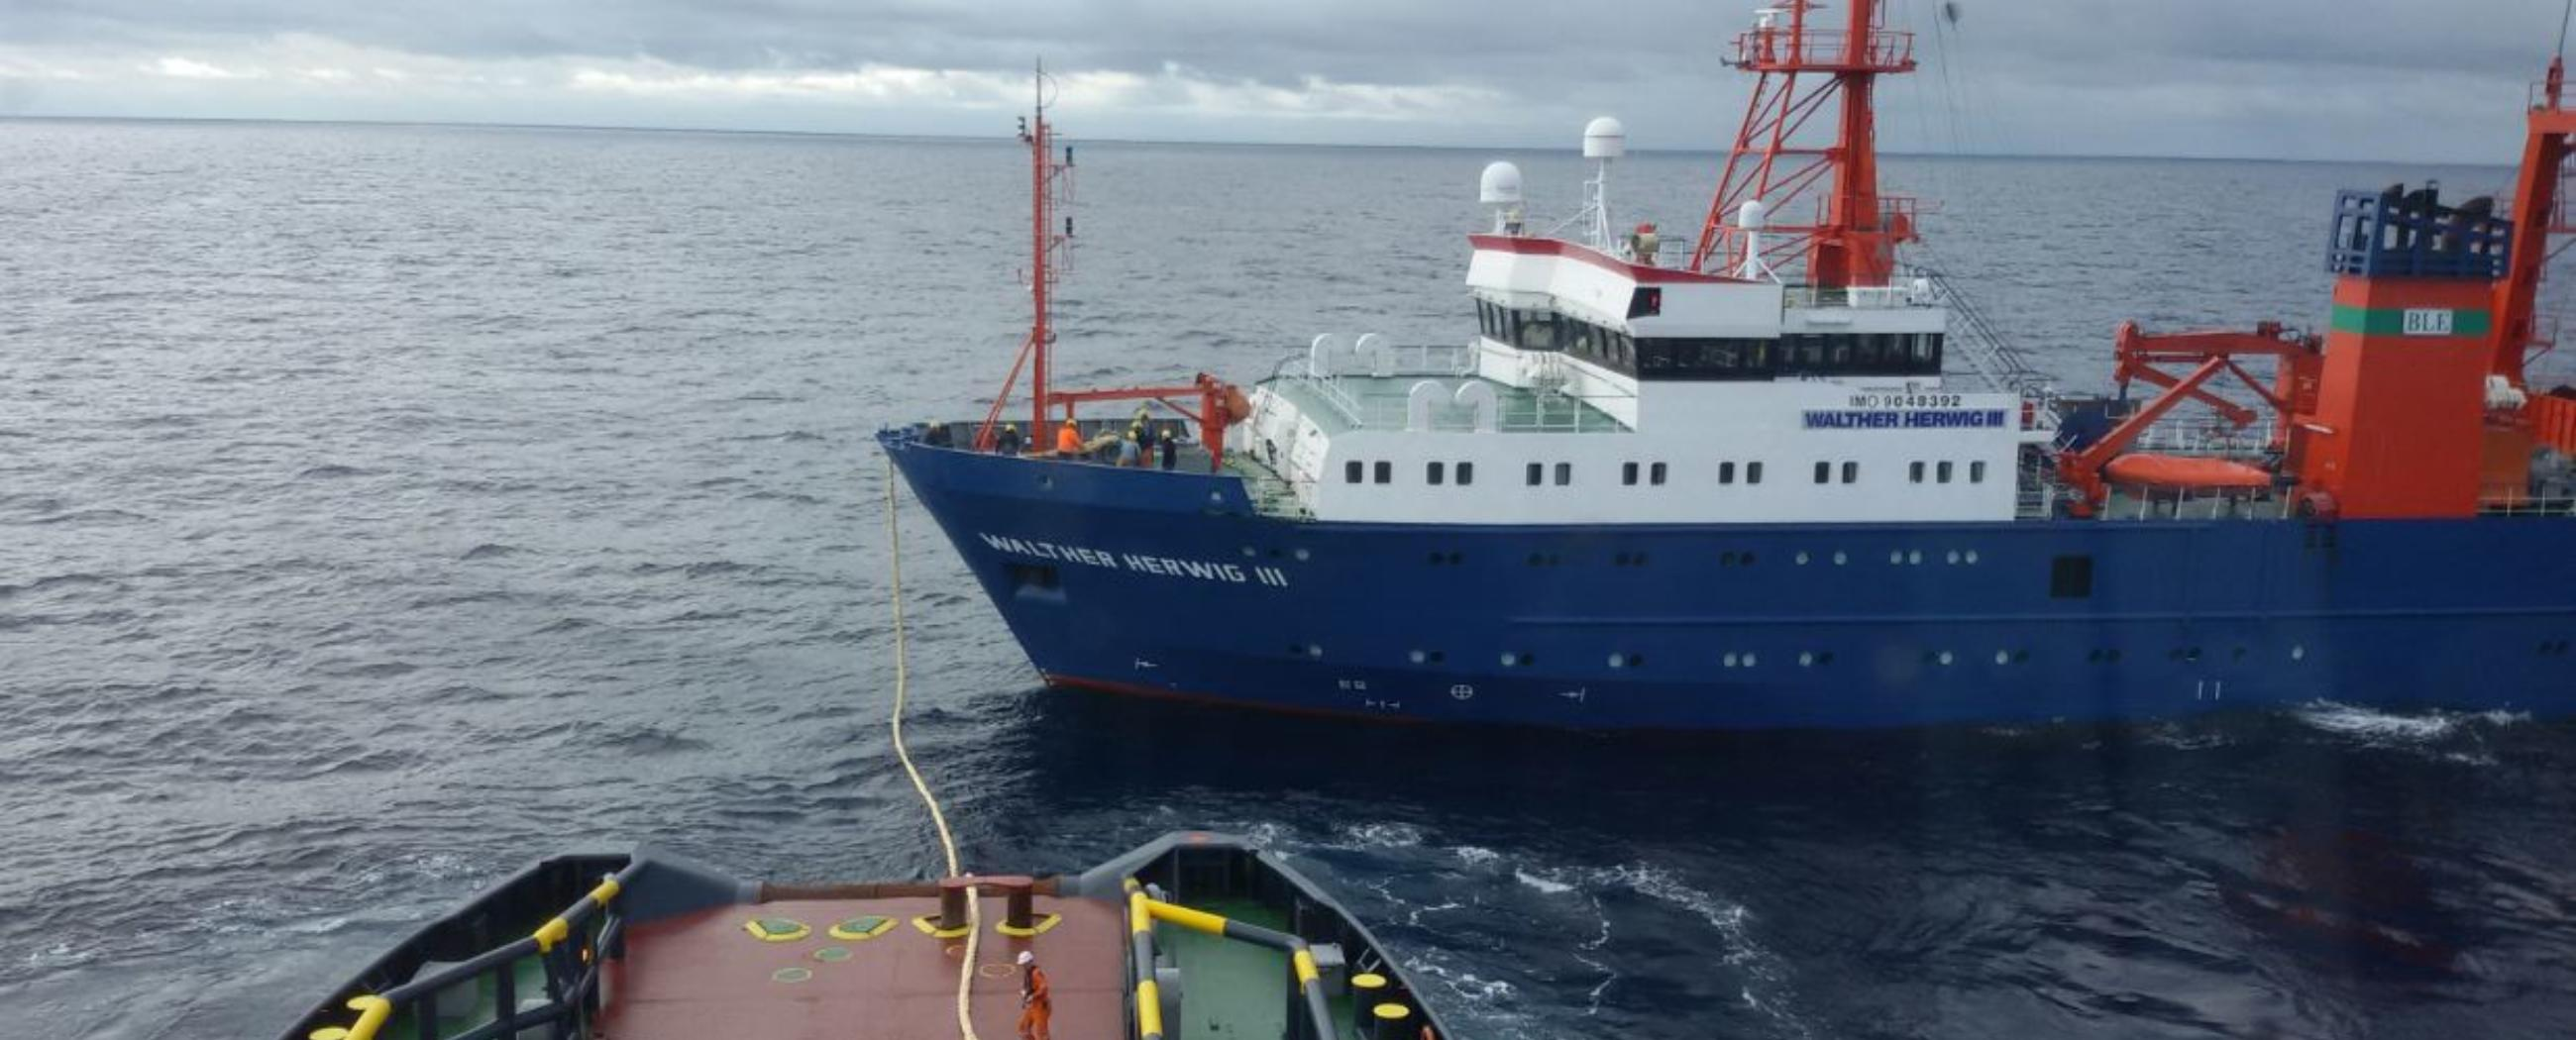 ALP Centre_emergency assistance towing of fishery vessel Walther Herwig III.jpeg